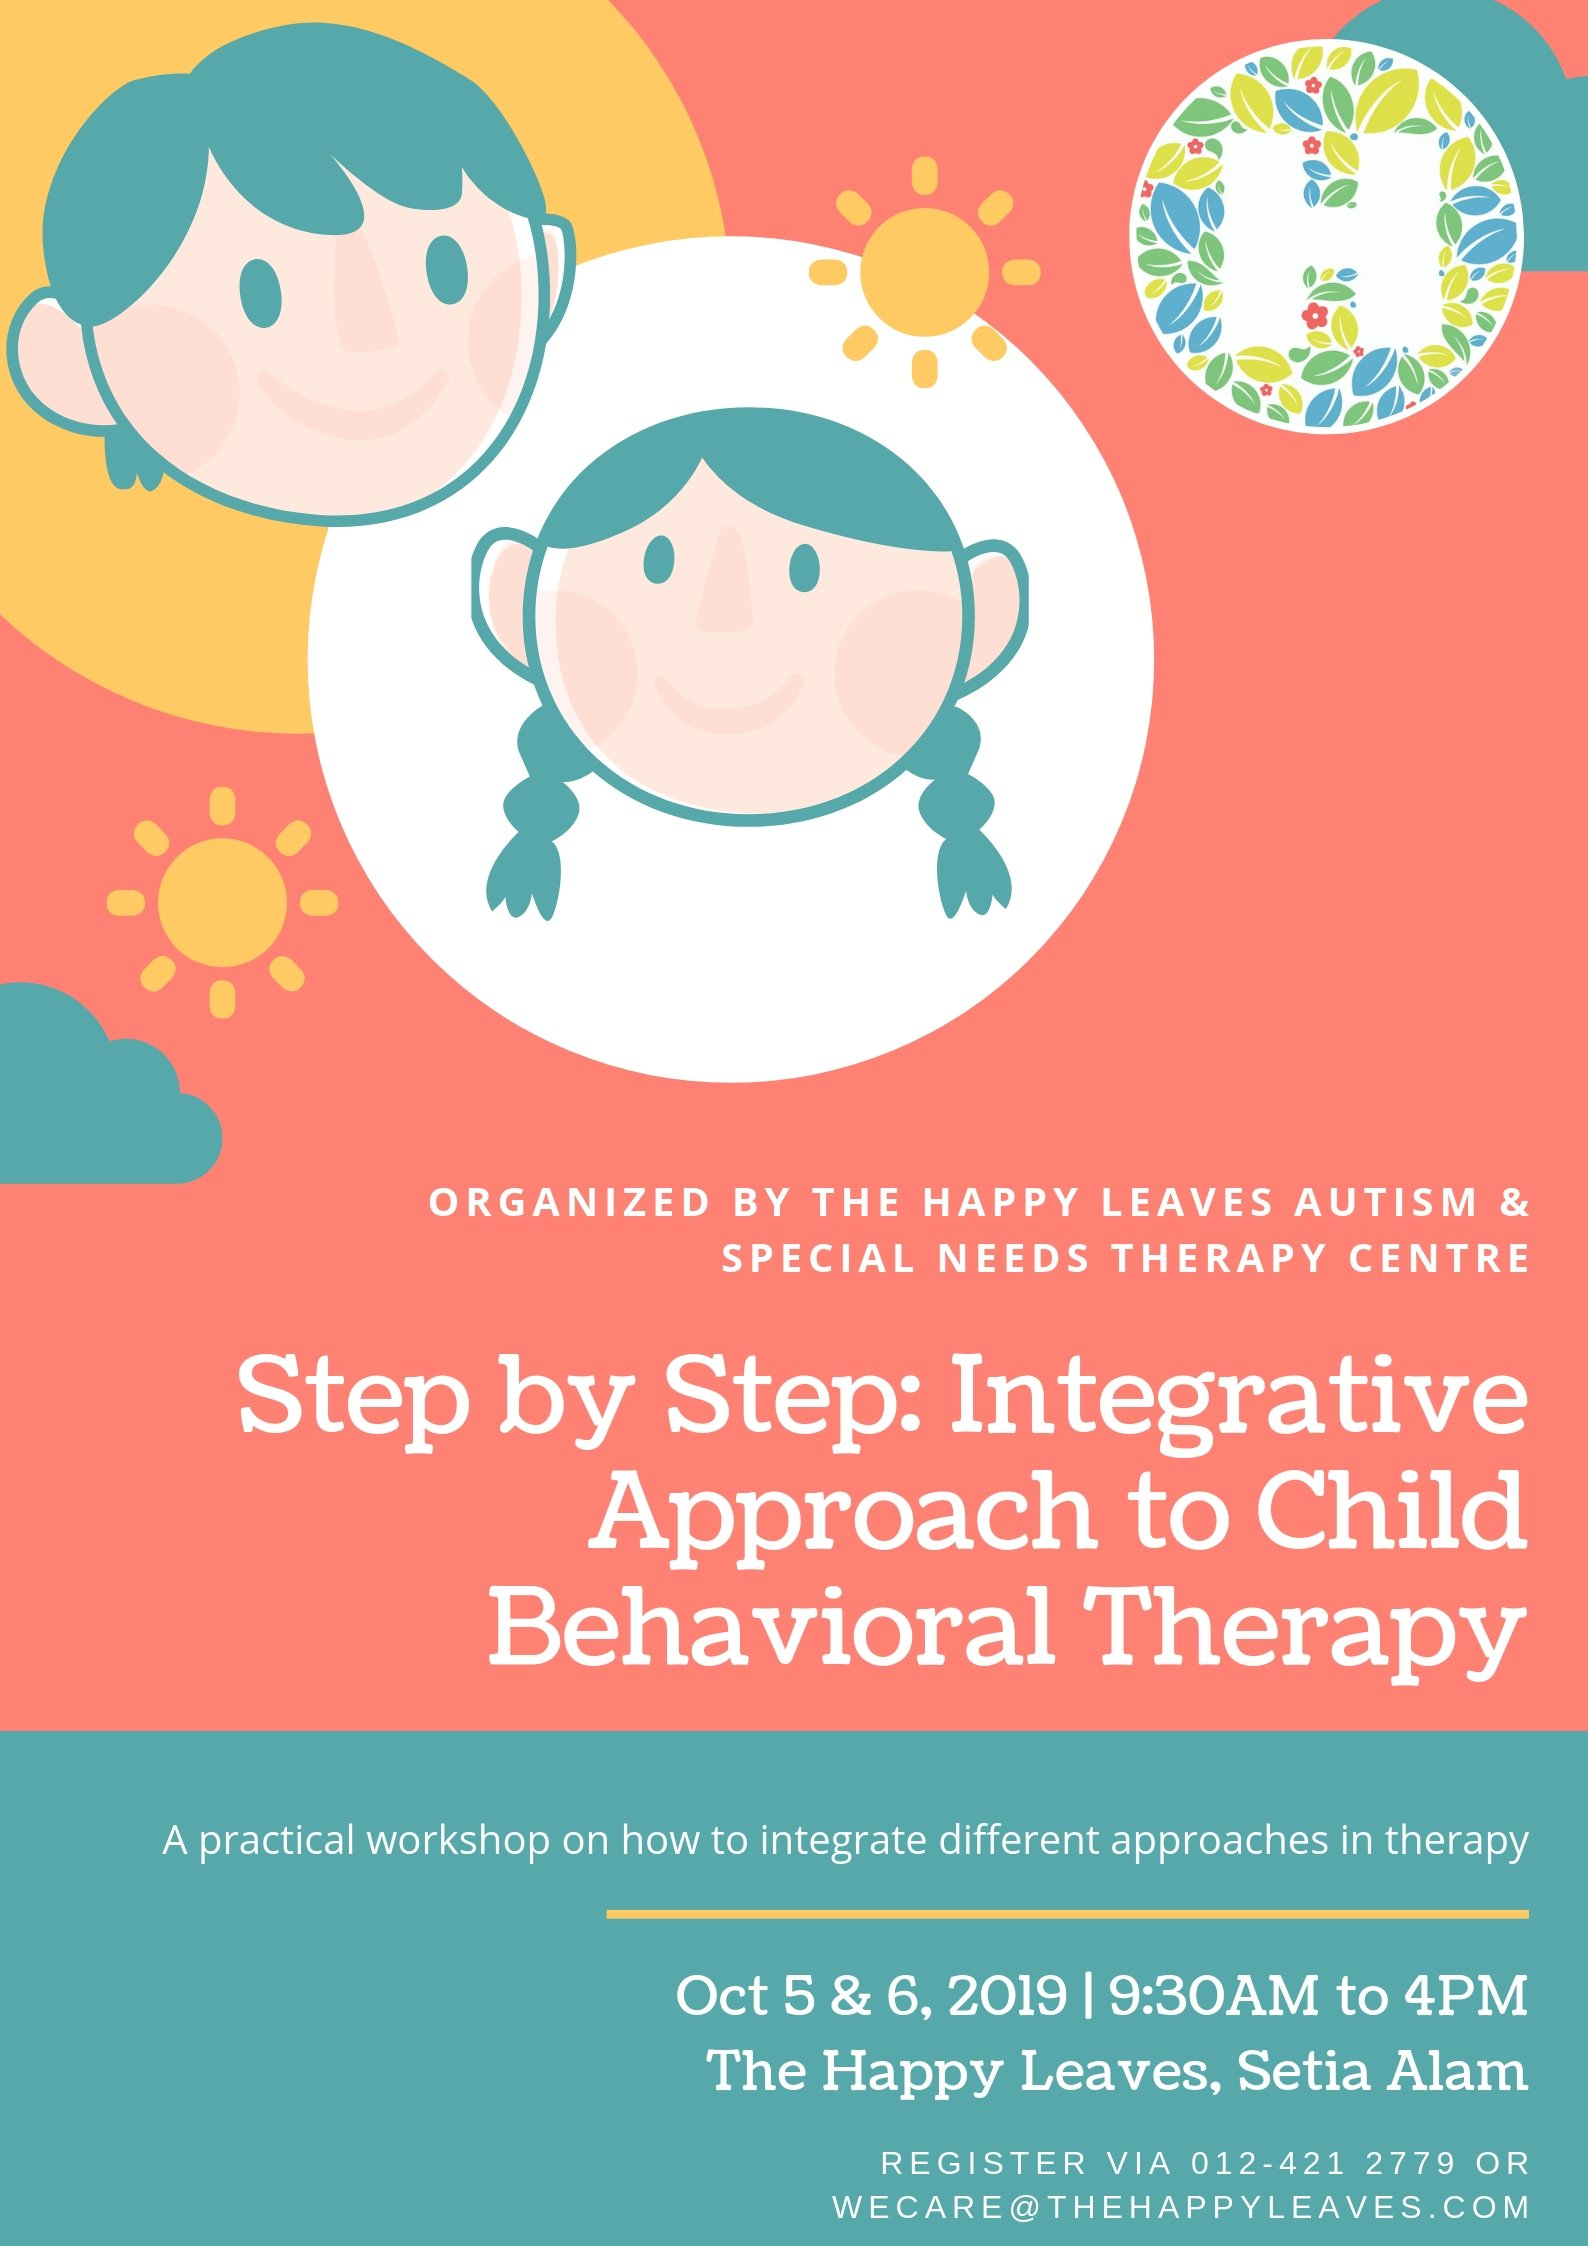 Step by Step: Integrative Approach to Child Behavioral Therapy